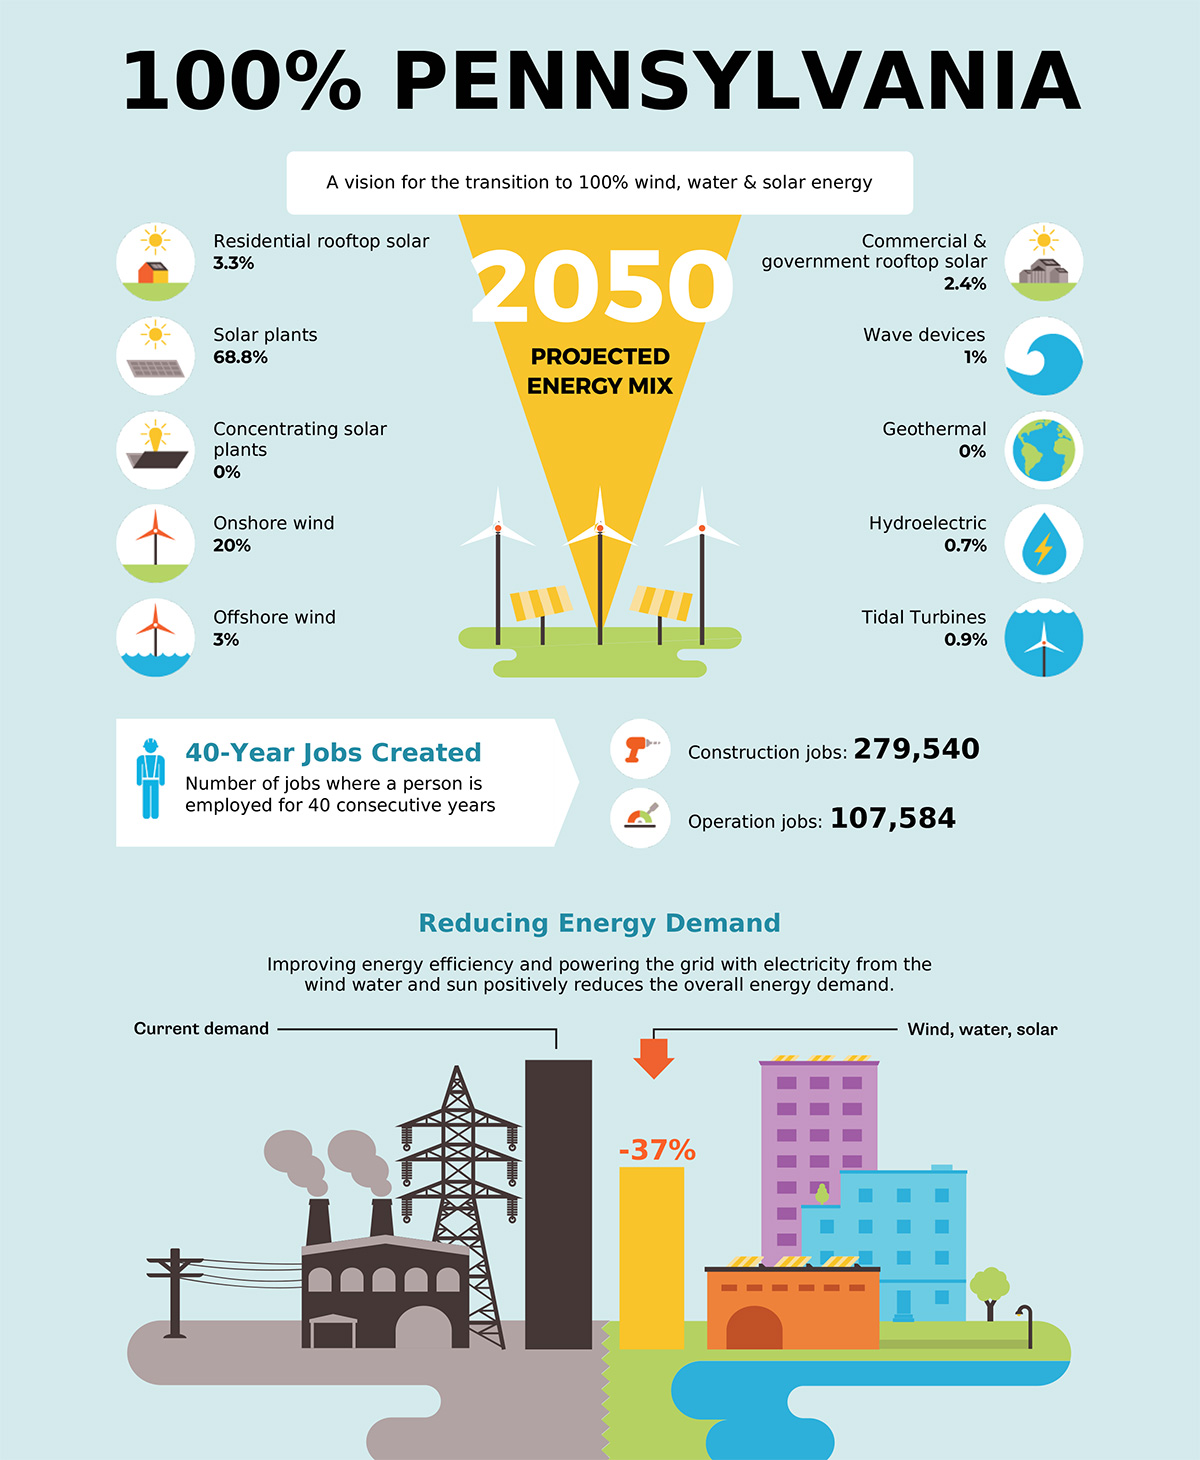 Our 100% Clean Energy Vision for Pennsylvania